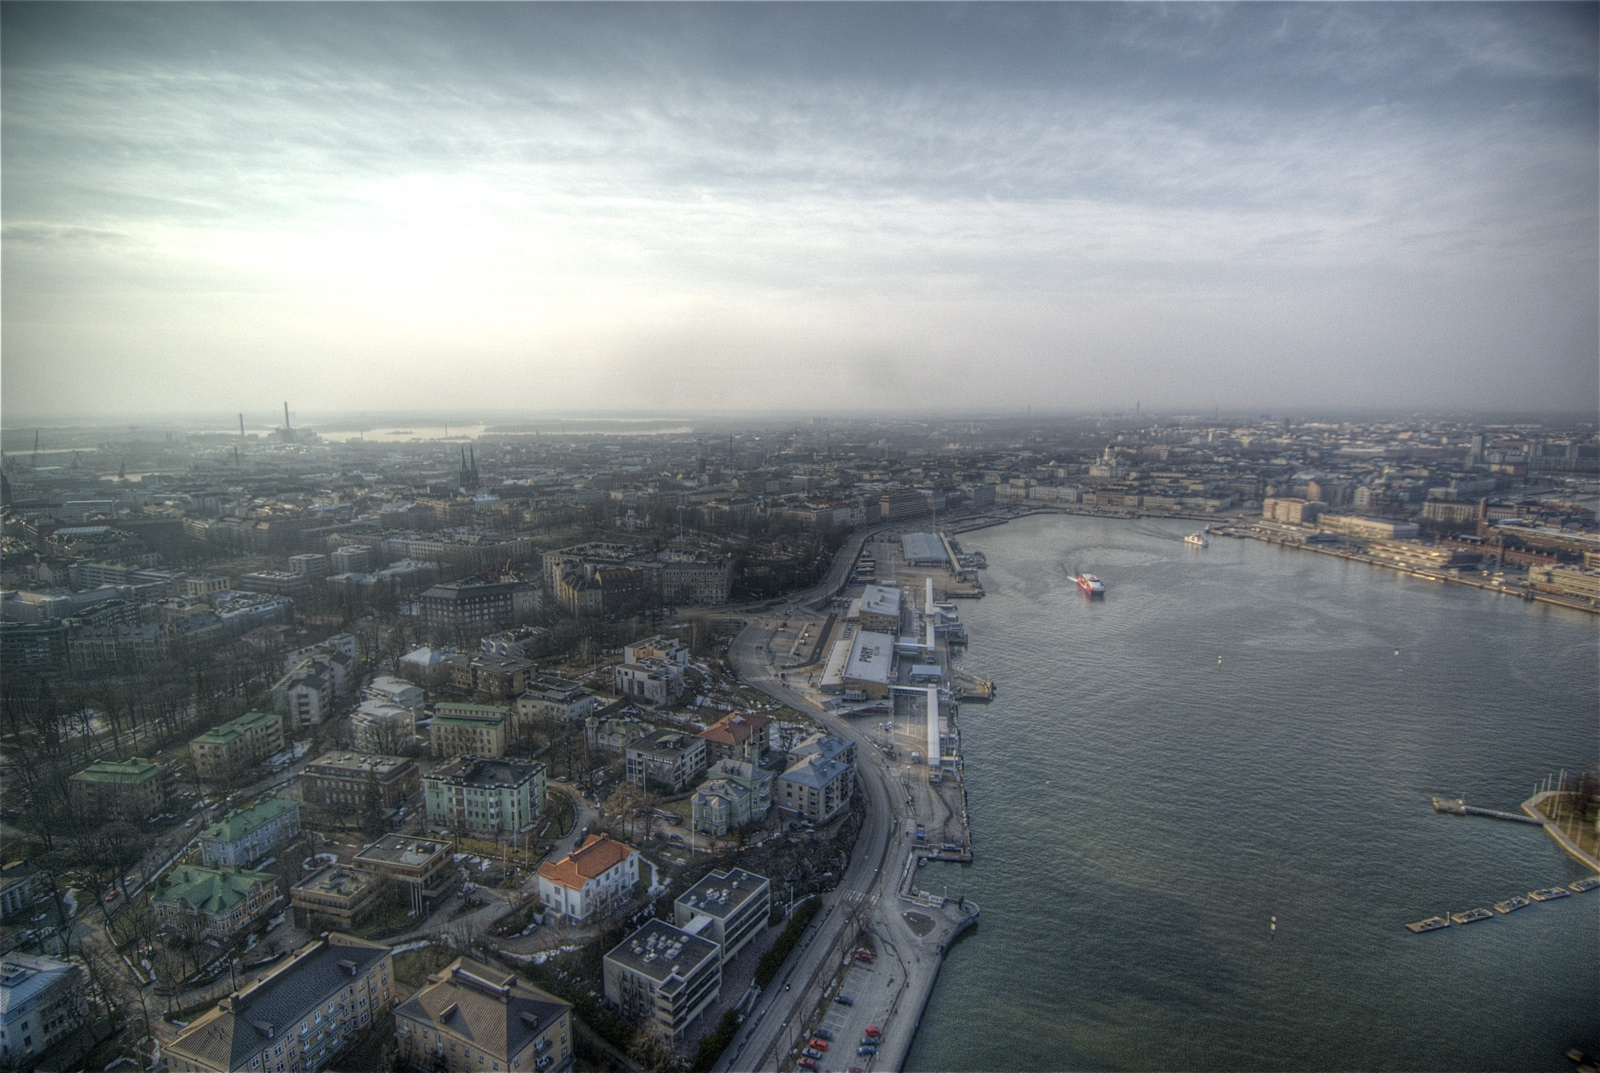 Helsinki has become one of the most conducive ecosystems in the world for startup founders (Photo: Ville Miettinen, Flickr Creative Commons)